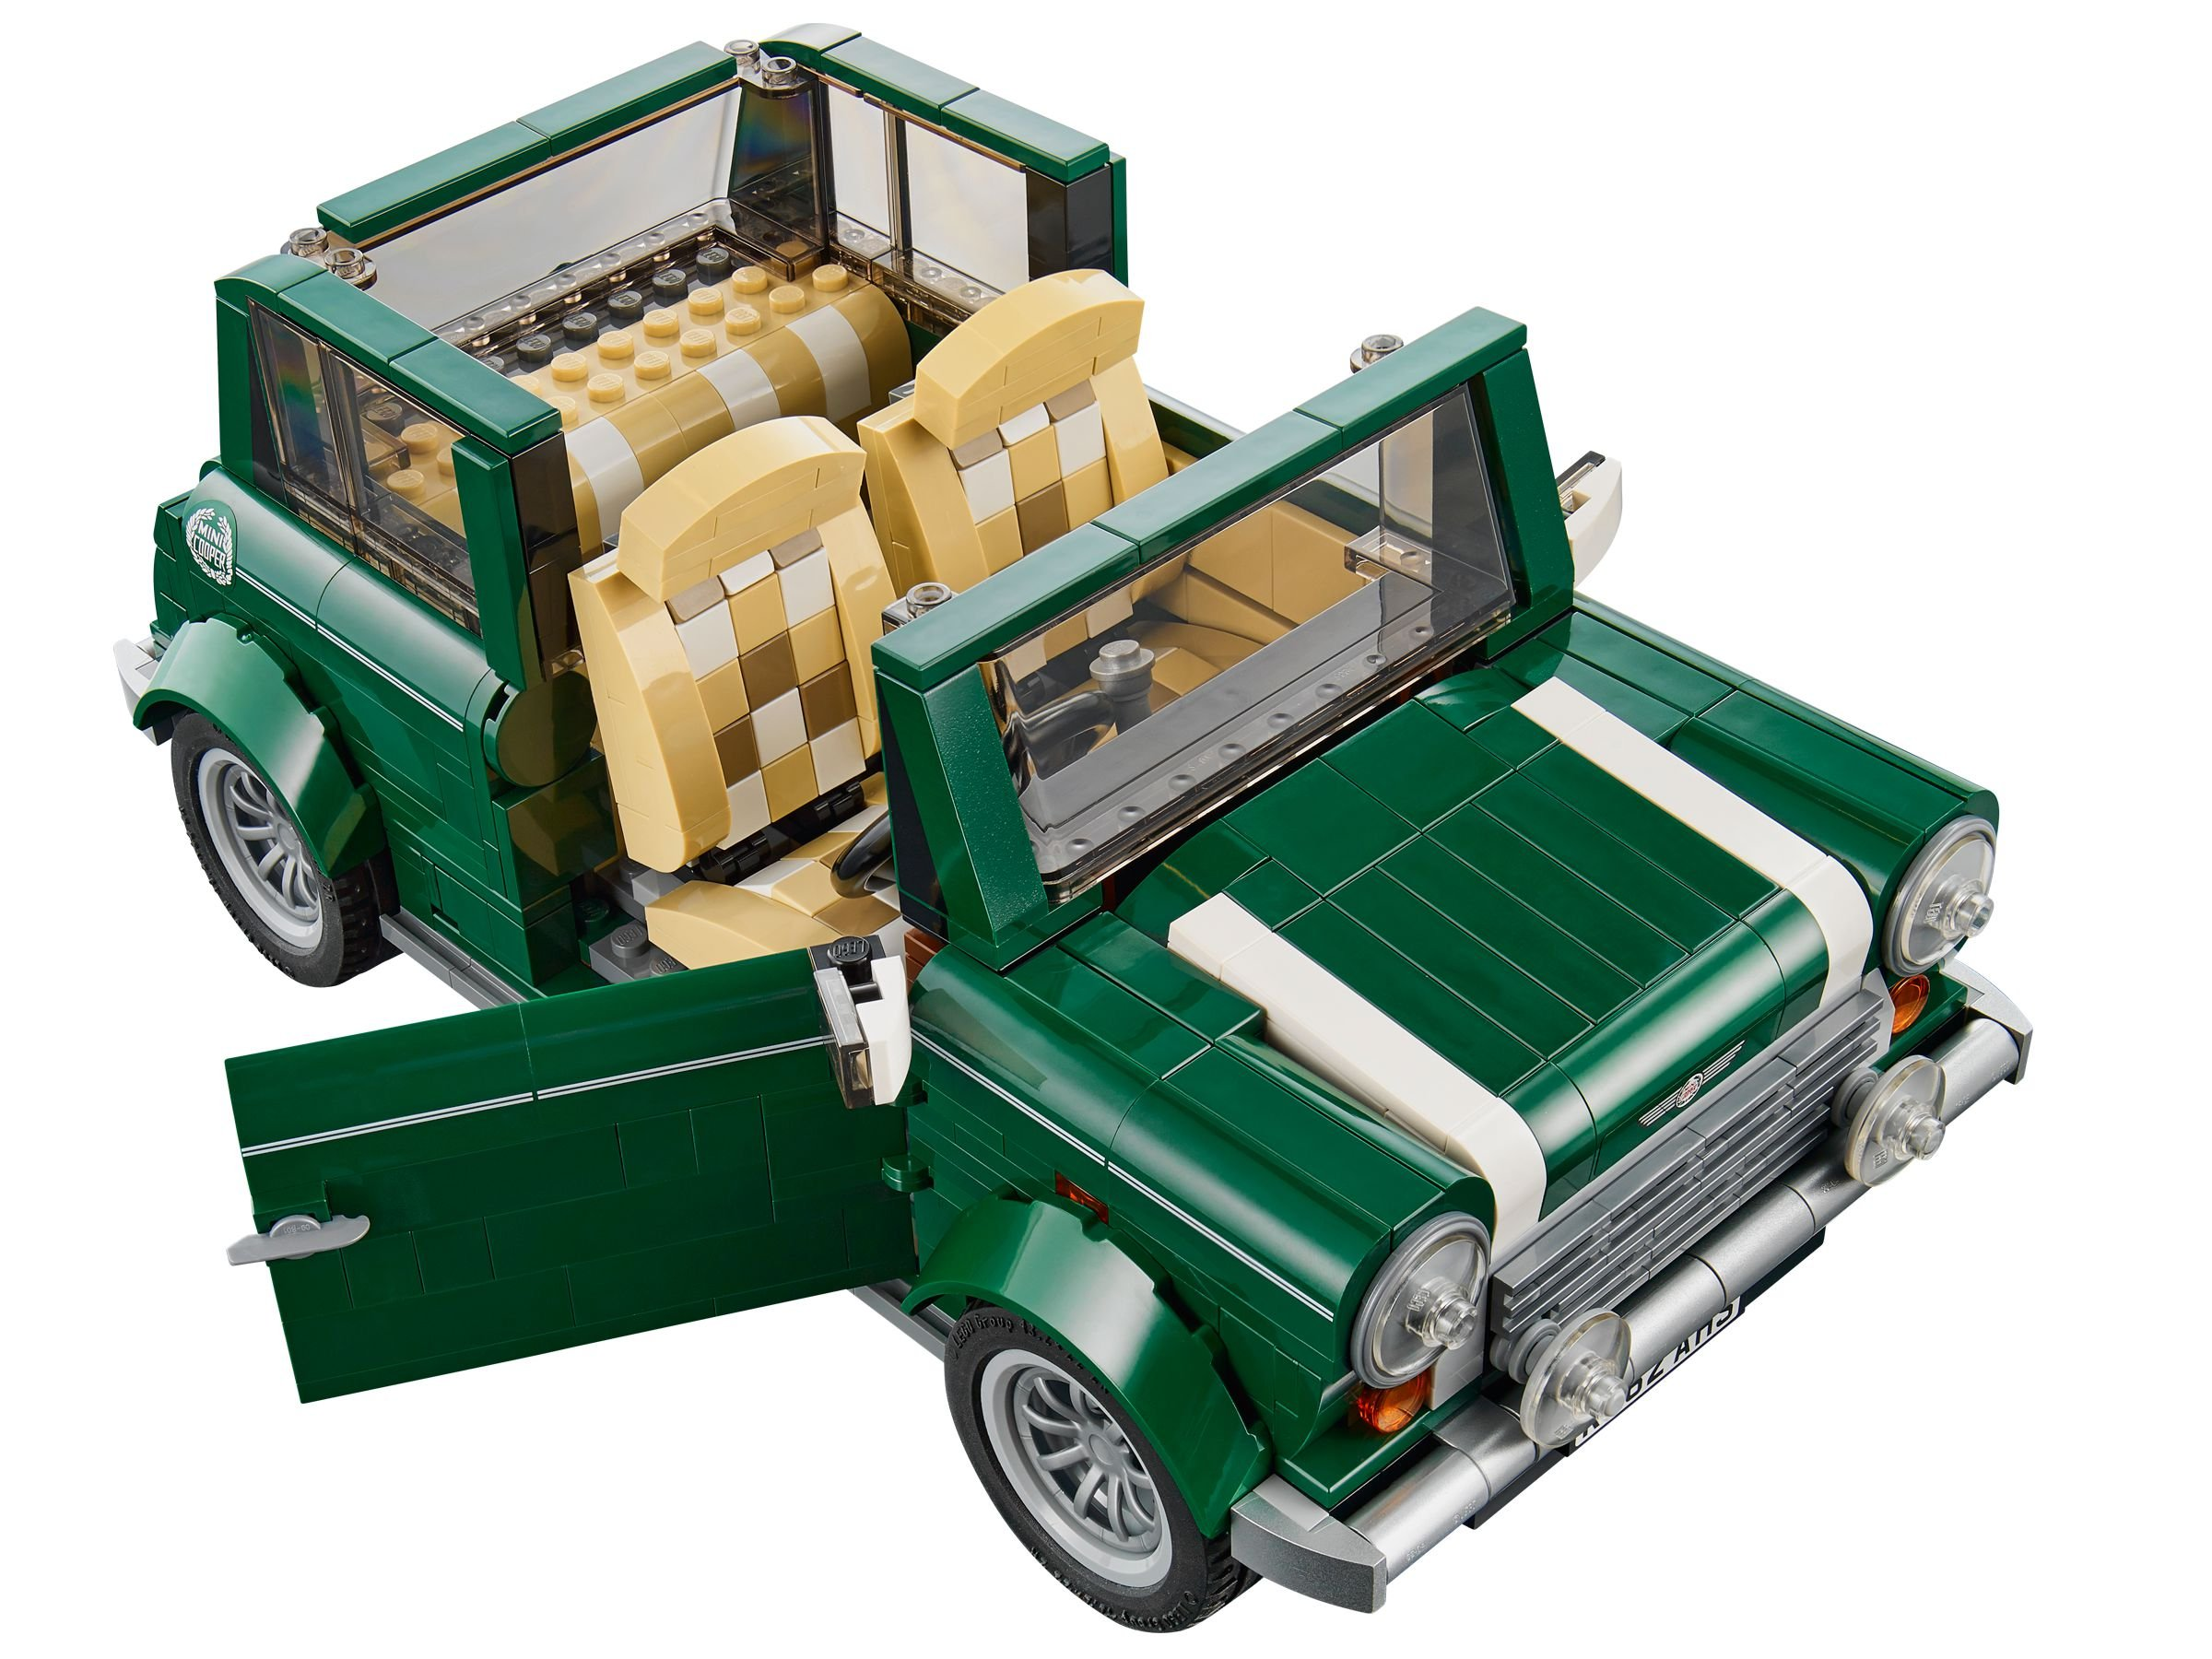 LEGO Advanced Models 10242 MINI Cooper LEGO_10242_alt6.jpg